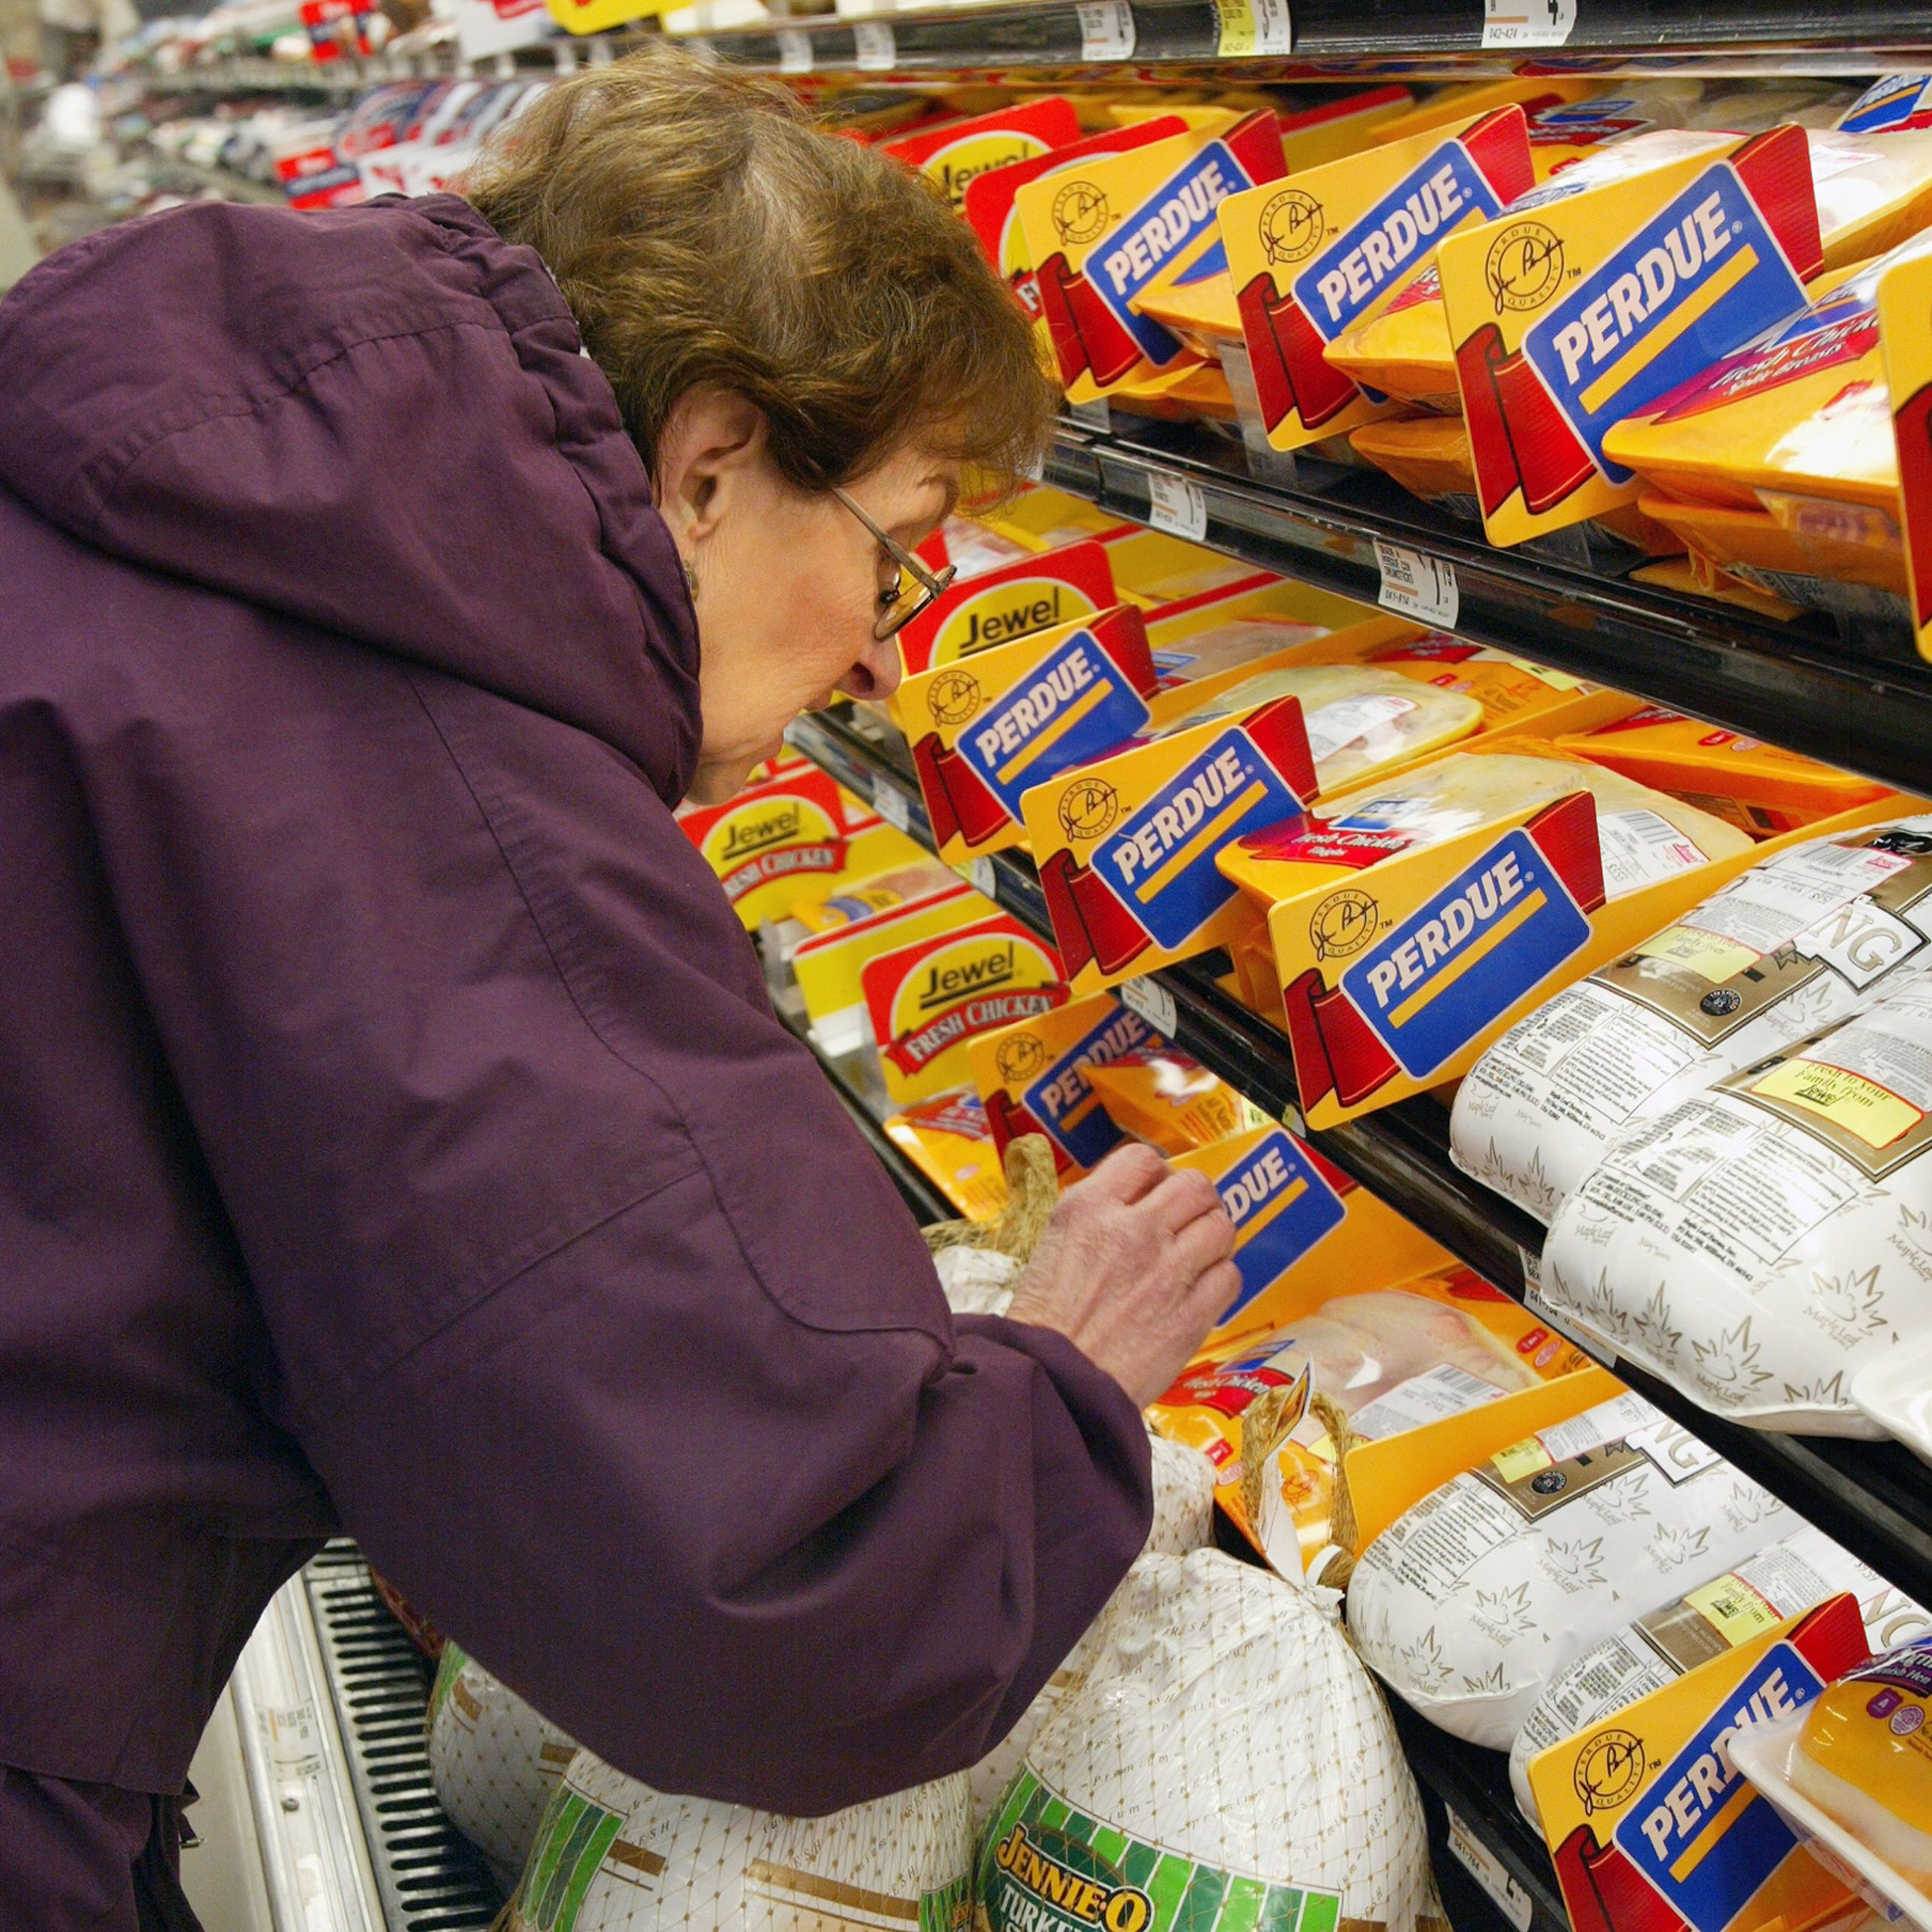 DES PLAINES, IL - NOVEMBER 26: Bess Tinaglia shops for a turkey November 26, 2002 at a Jewel-Osco food store in Des Plaines, Illinois. With Thanksgiving just two days away, supermarket shoppers are busy with their last-minute needs. (Photo by Tim Boyle/Getty Images)